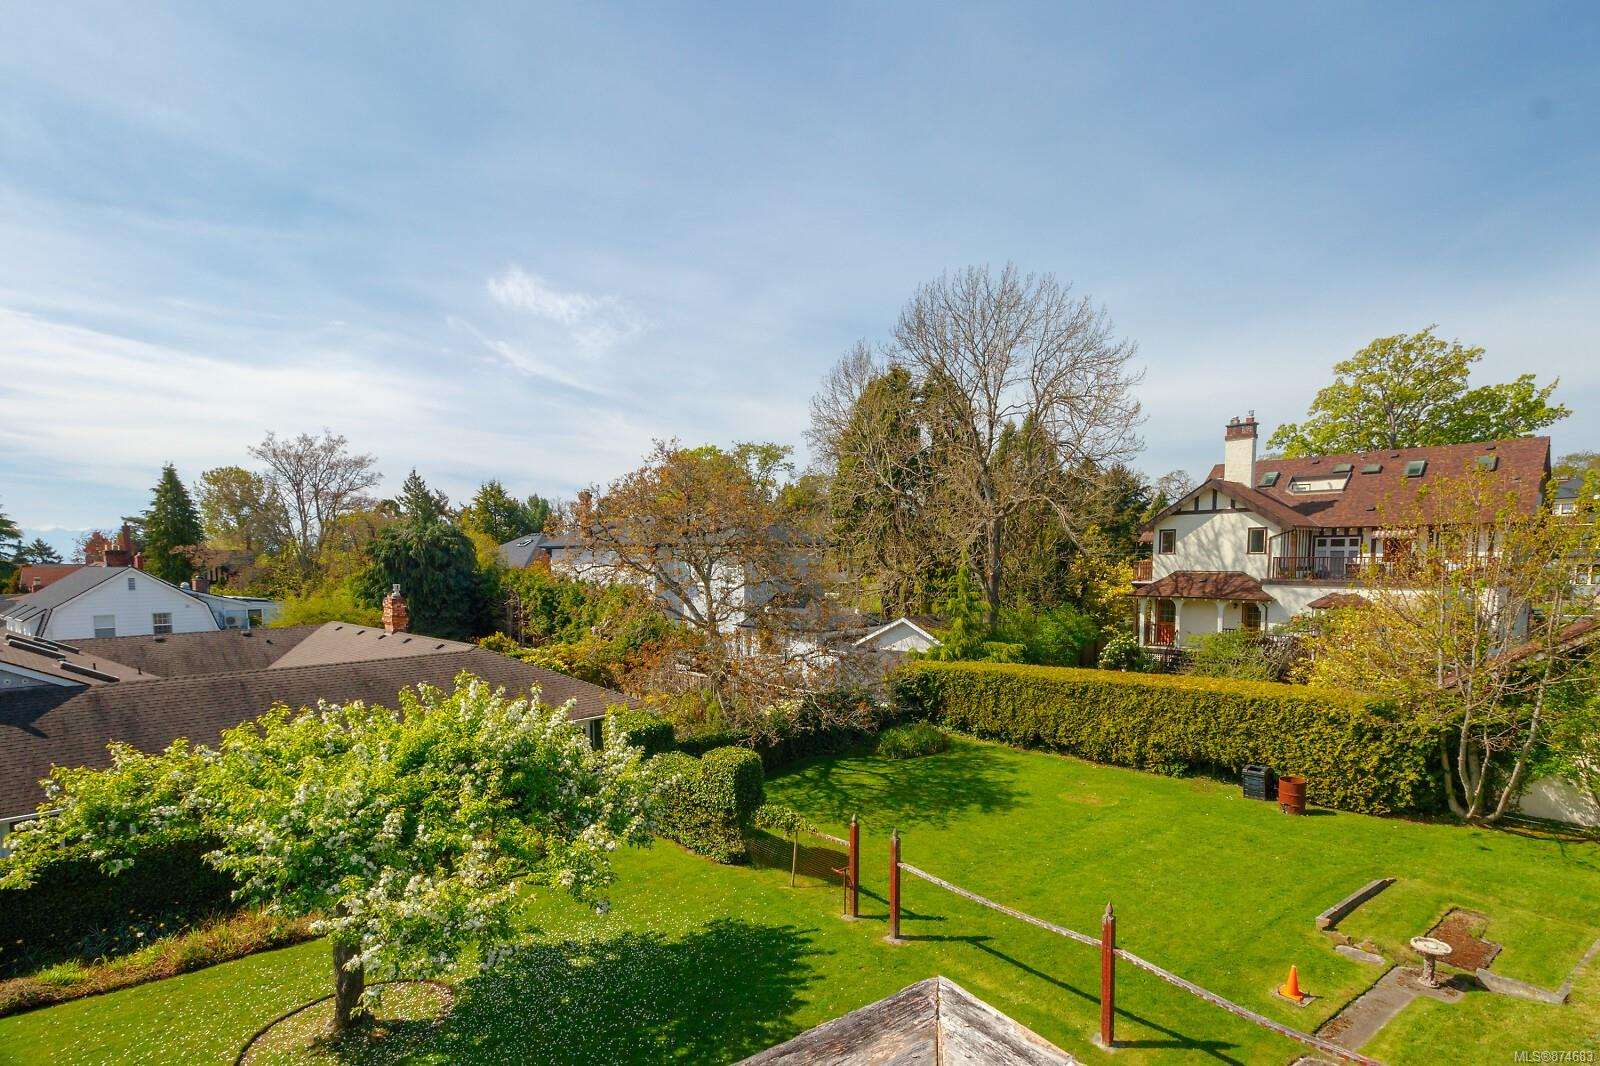 Photo 39 at 3 - 830 St. Charles Street, Rockland, Victoria